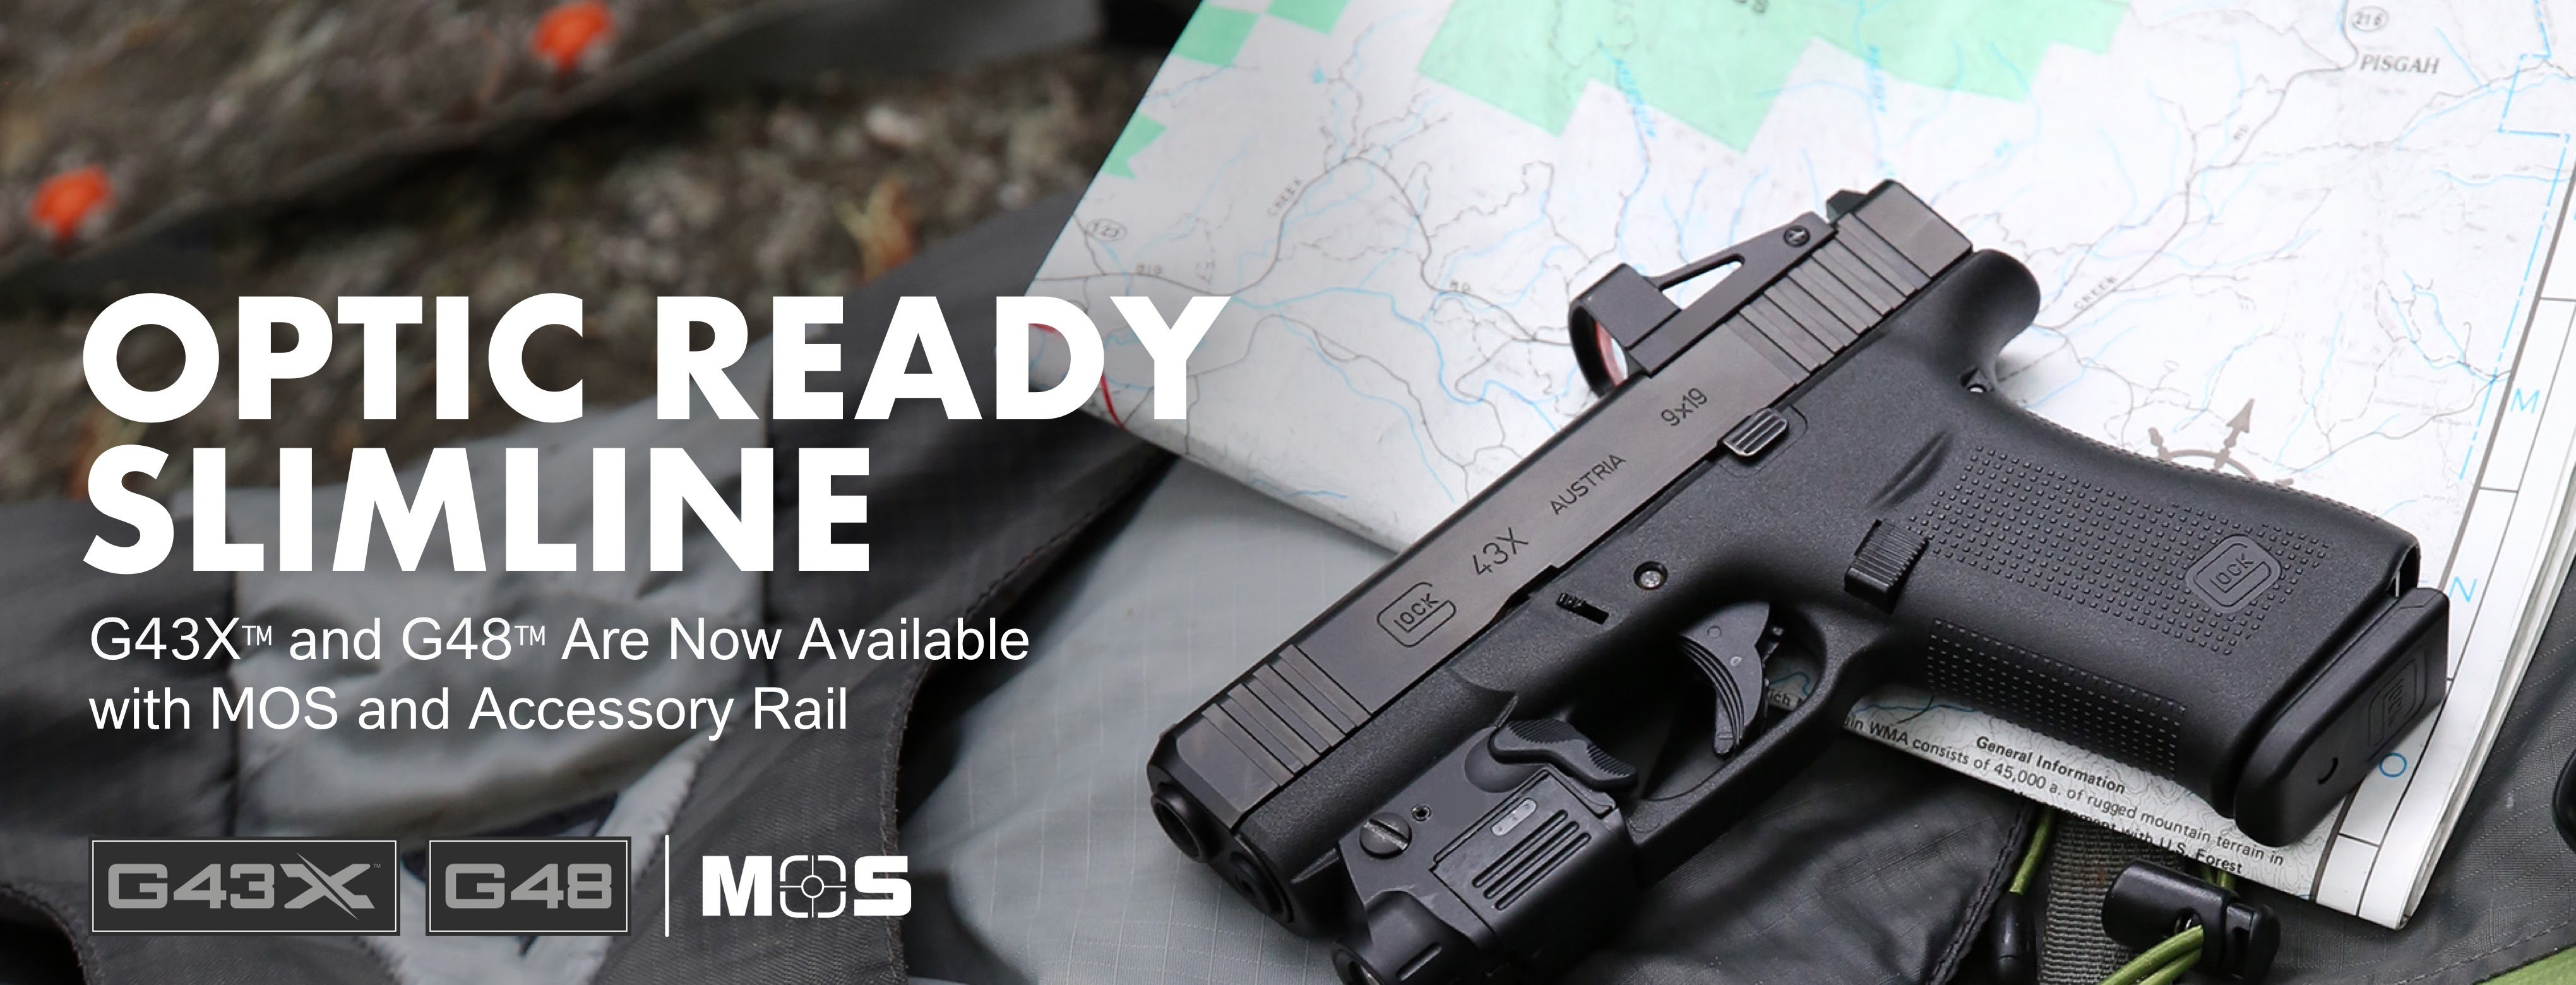 GLOCK Introduces Optic Ready Slimline Models G43X and G48